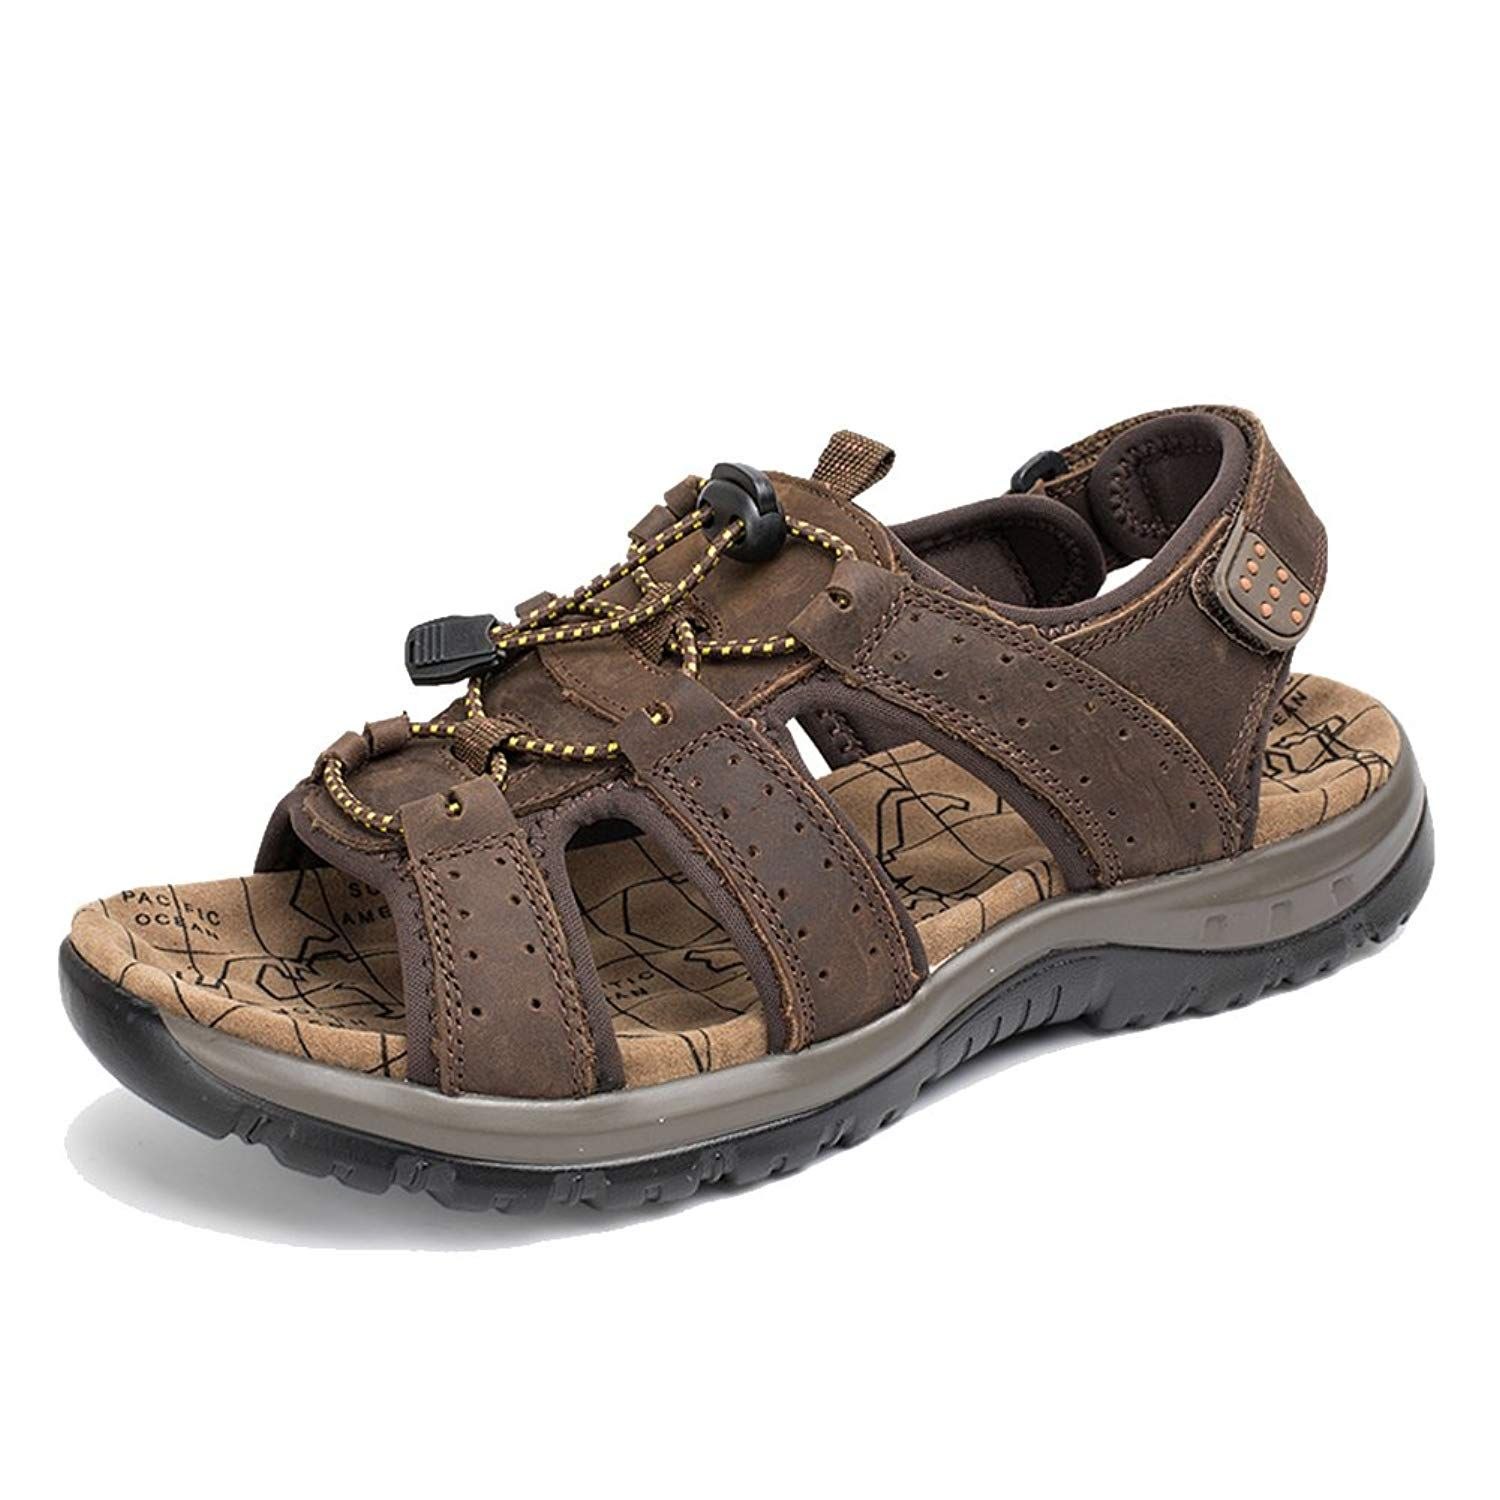 d8c95826ddba8 Agowoo Women's Lace Up Hook and Loop Beach Hiking Sandals *** Read ...